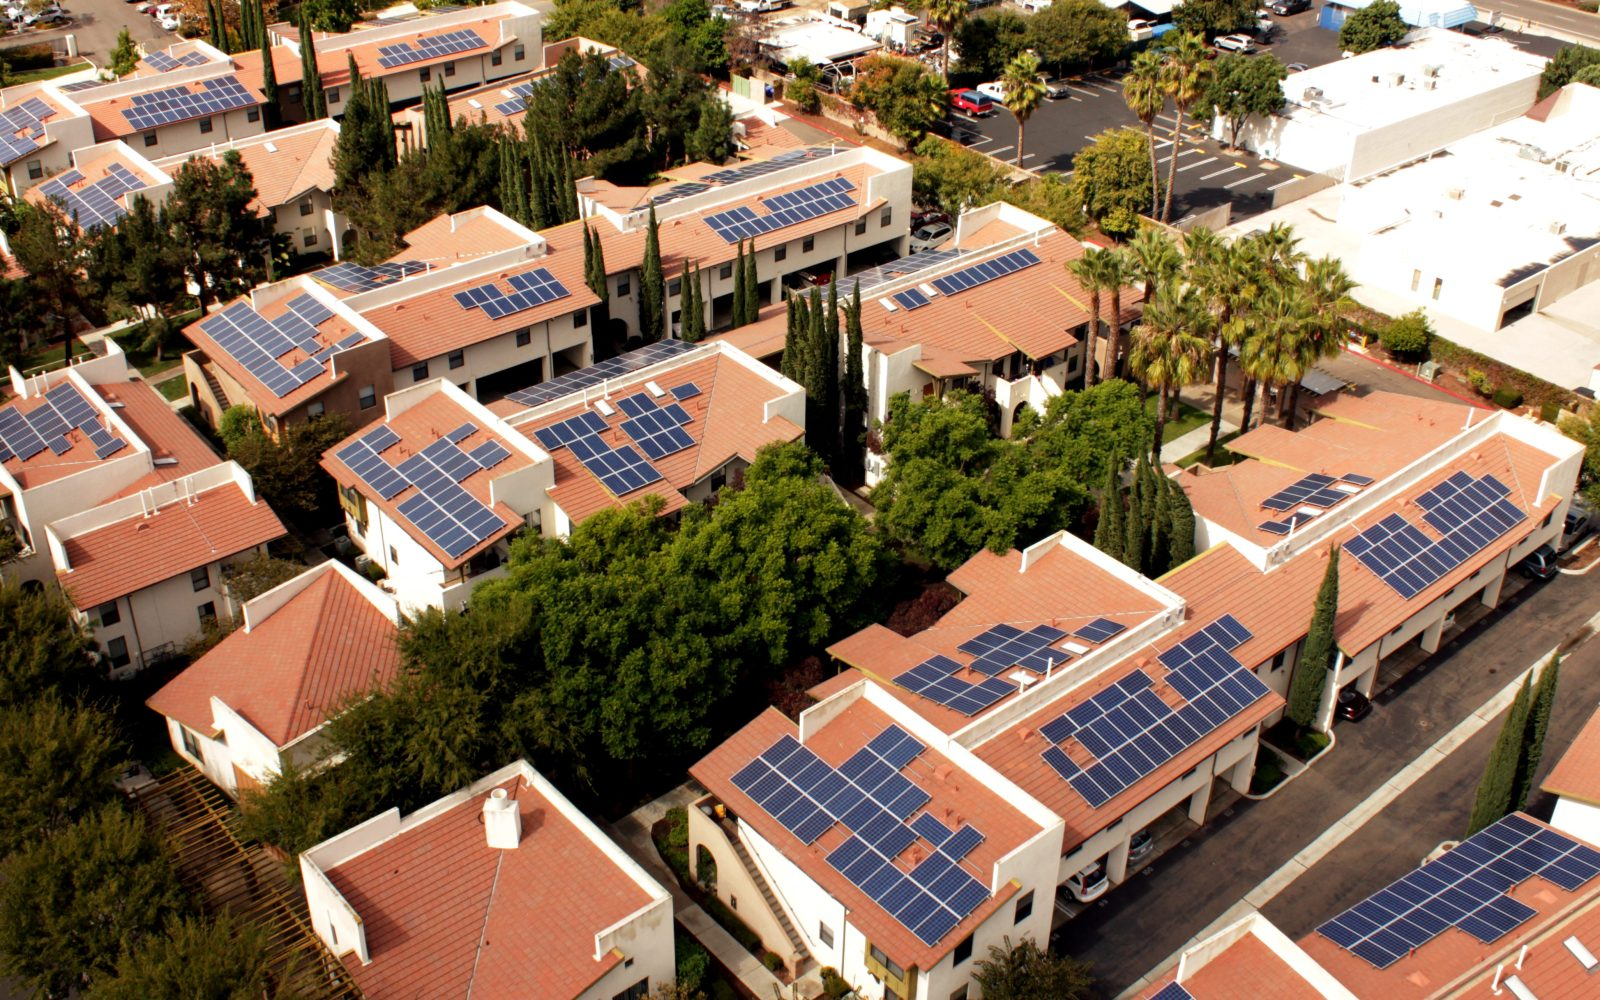 Rooftop solar could provide 25% of US electricity needs (up from <1%), study says – here are charts illustrating state-by-state potential